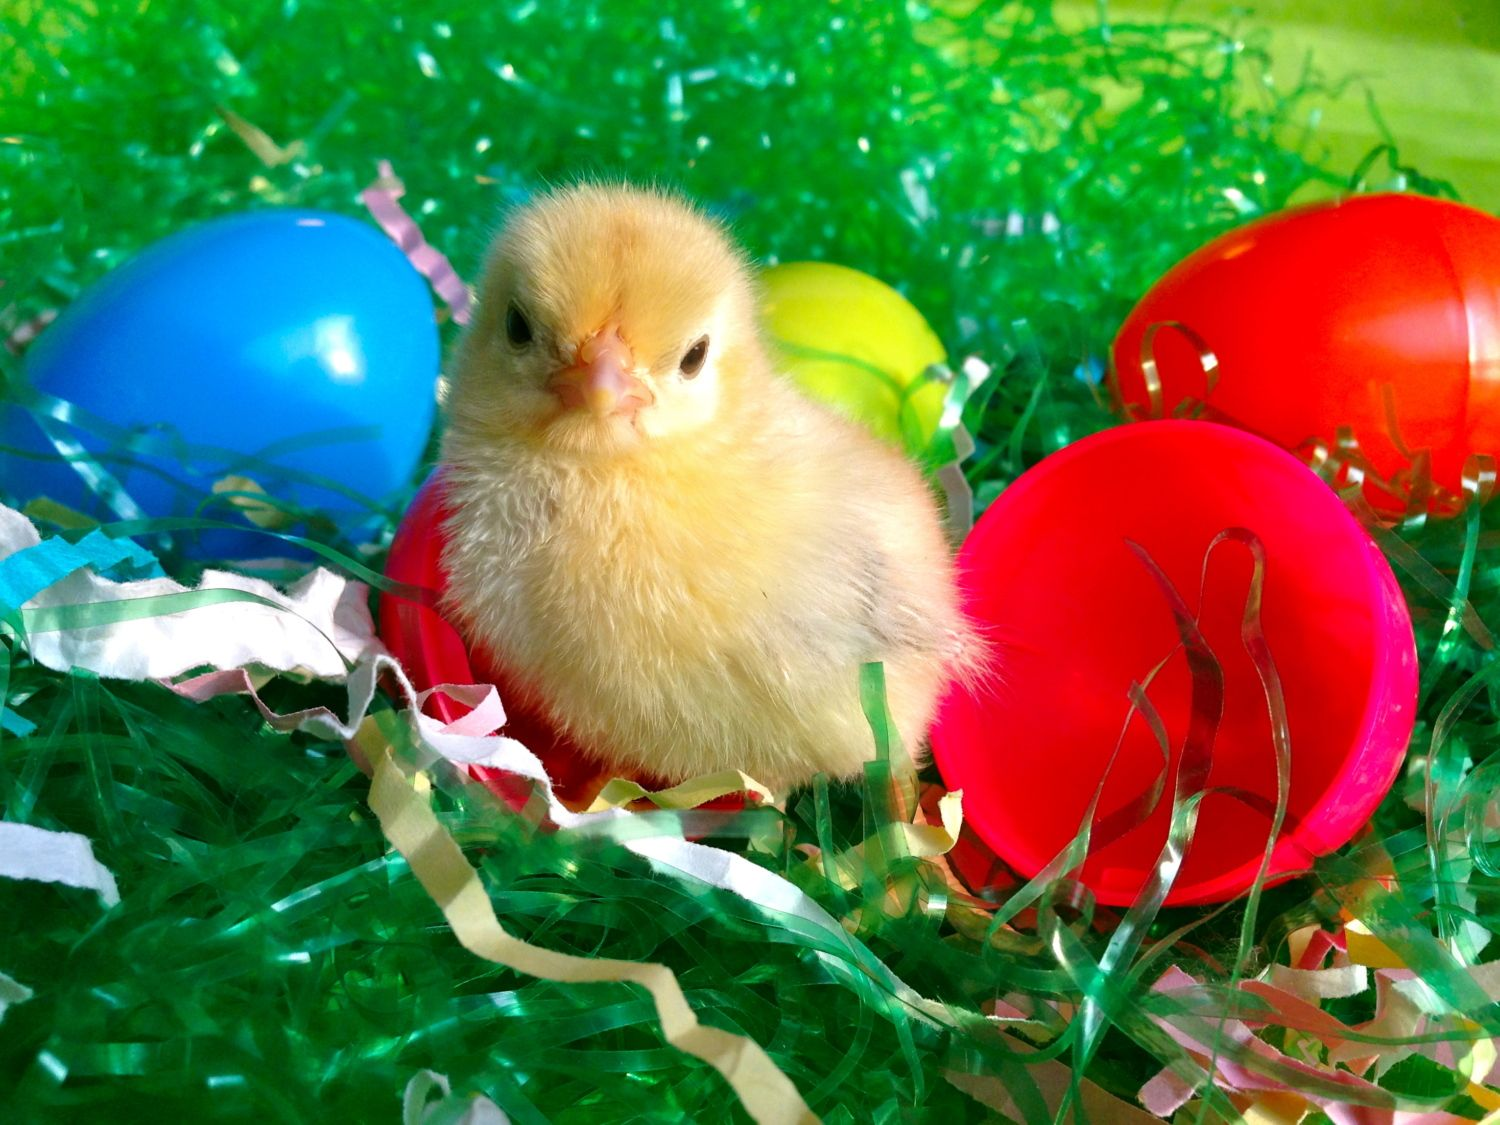 hokankai's photos in Contest #11 Easter/Spring Fowl Photo Contest! 5th Annual BYC Easter Hatch-a-long!